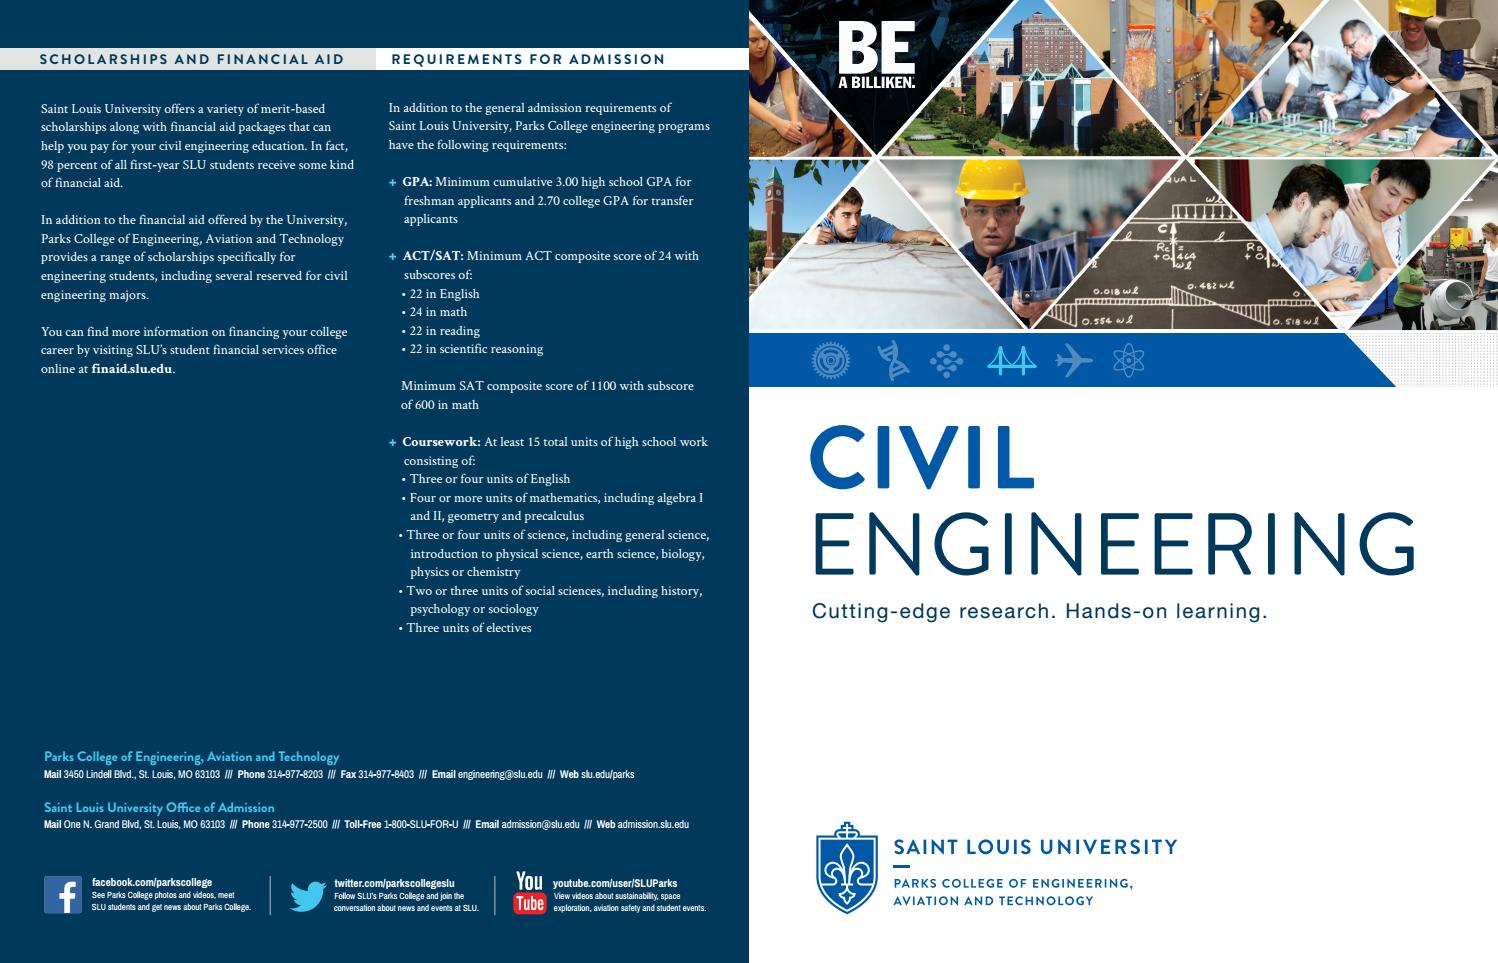 Department of Civil Engineering Brochure by Parks College of